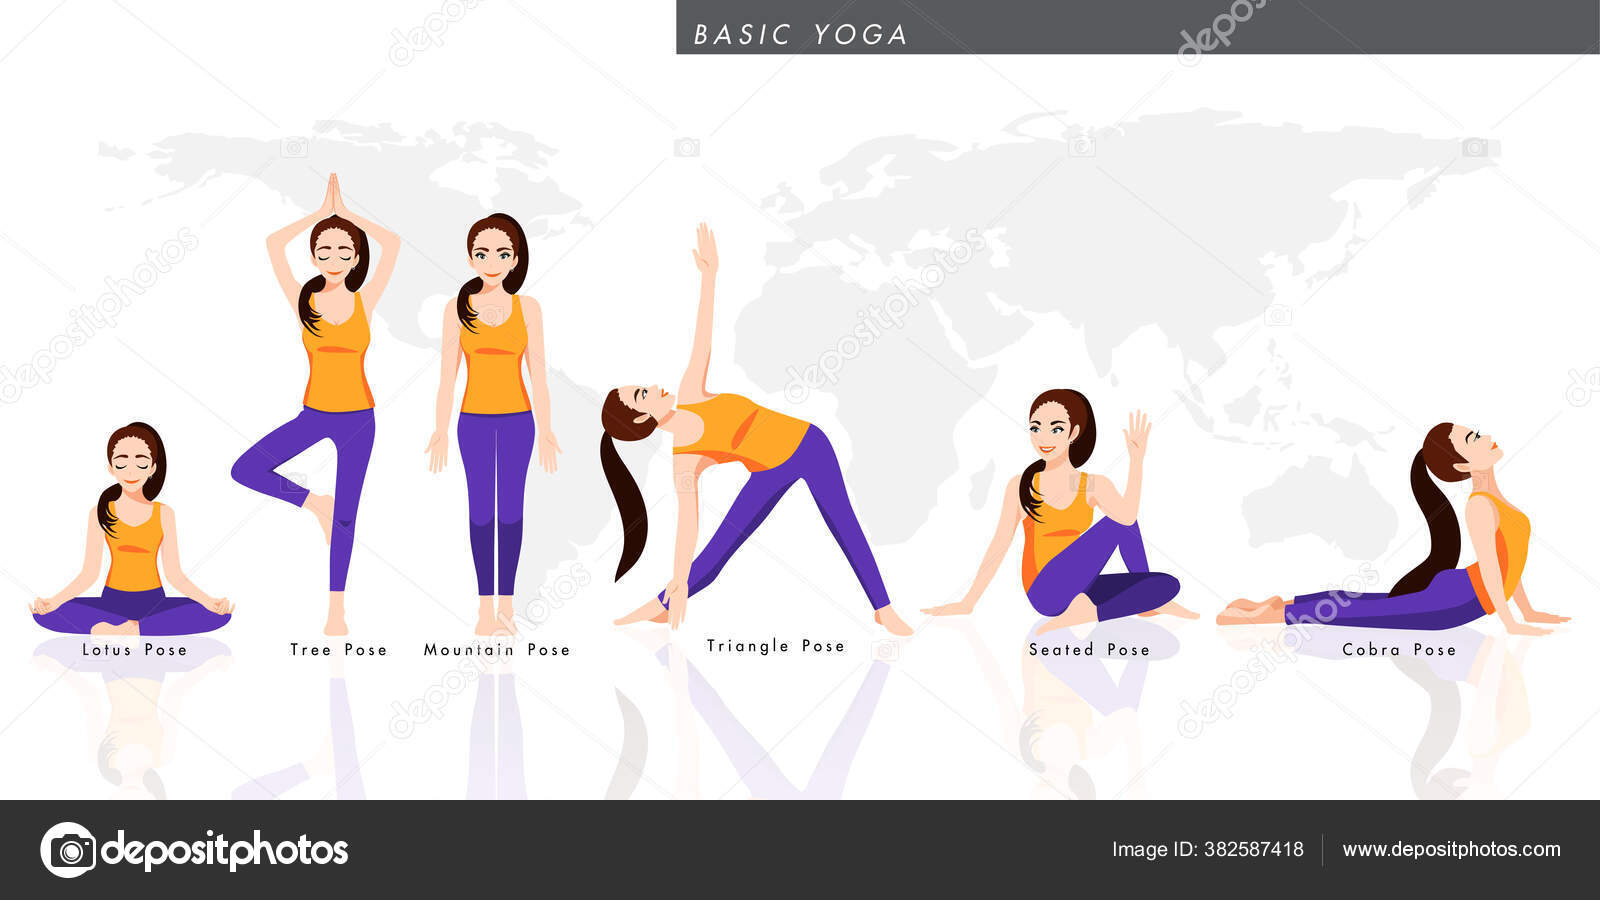 Seated Pose Stock Vectors Royalty Free Seated Pose Illustrations Depositphotos